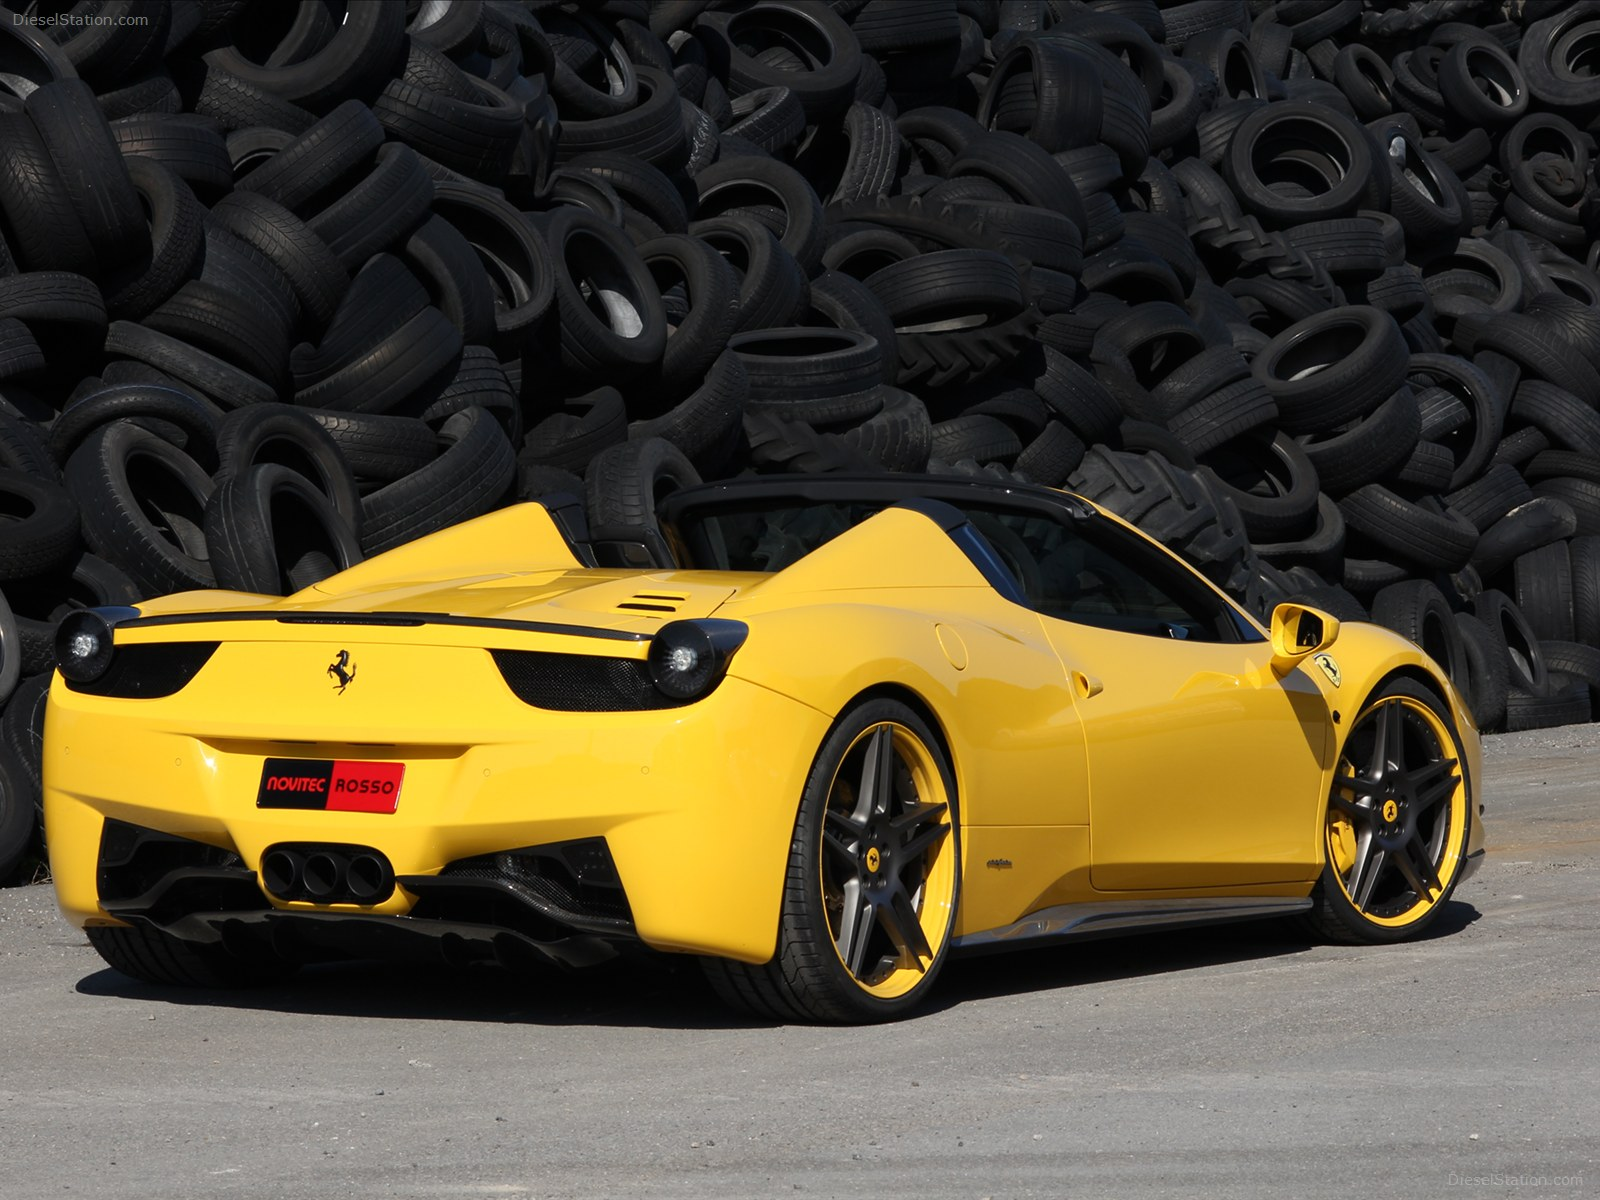 Novitec Rosso Ferrari 458 Spider 2012 World Cars Wallpapers Desktop Download